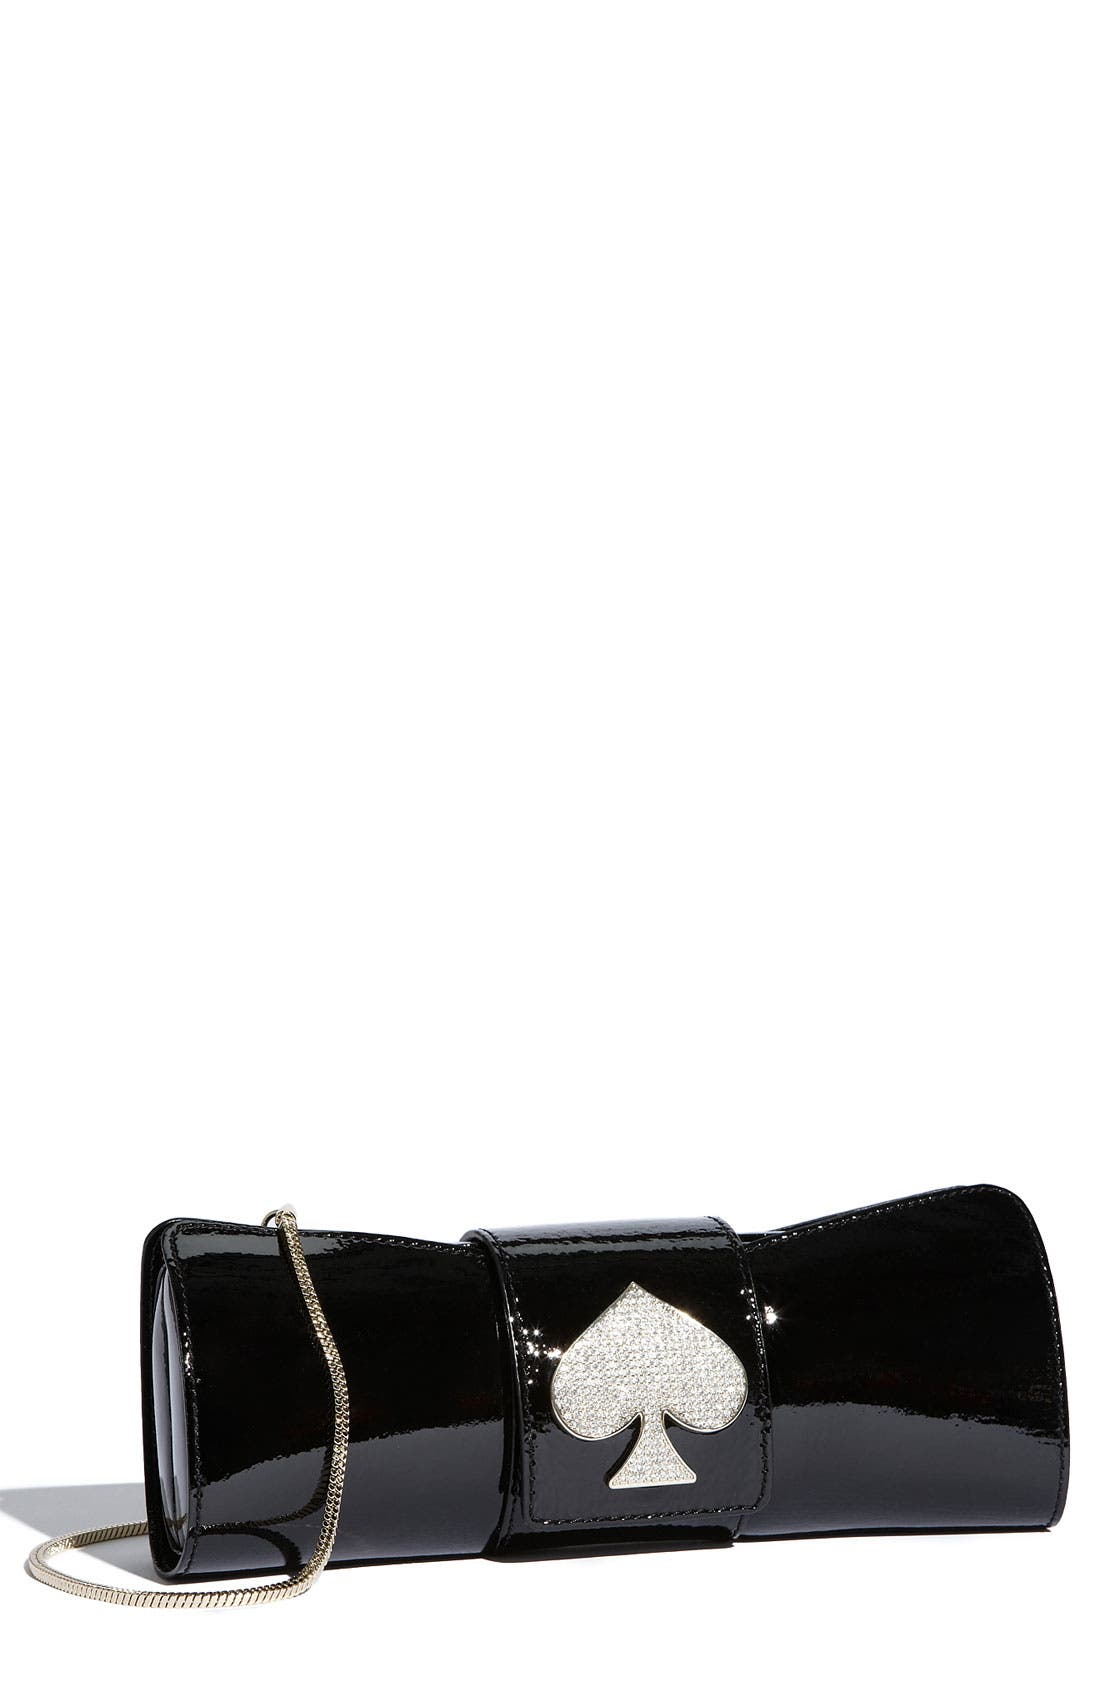 Main Image - kate spade new york 'sparkle spade bow' clutch